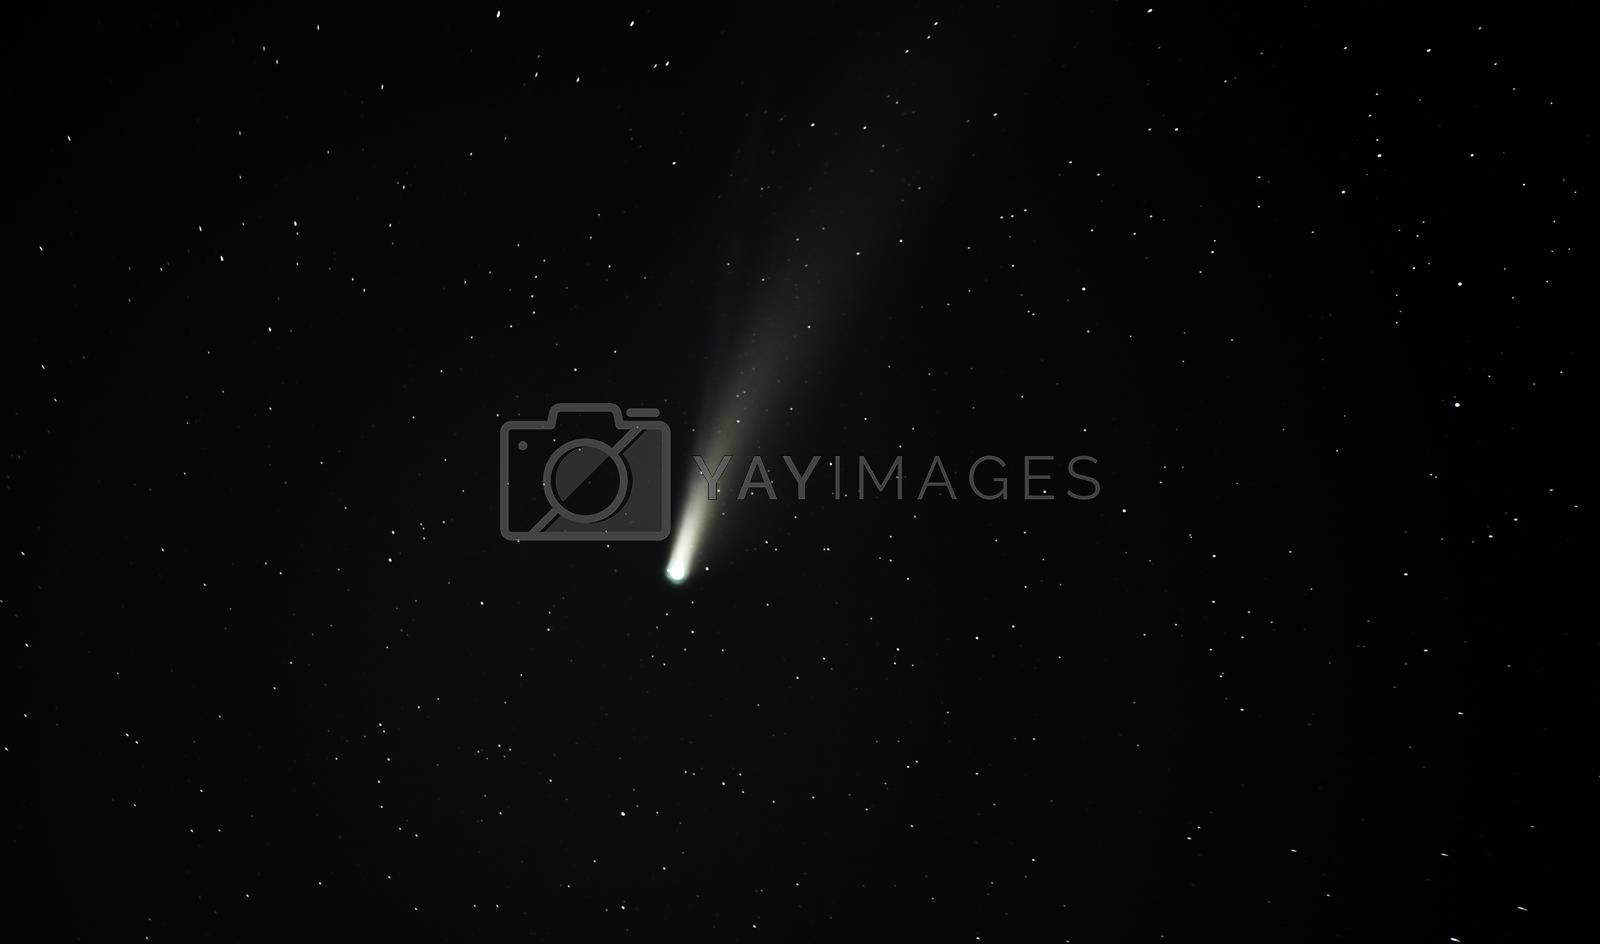 Comet Neowise captured at 200mm focal length, clearly showing dust and ion tails